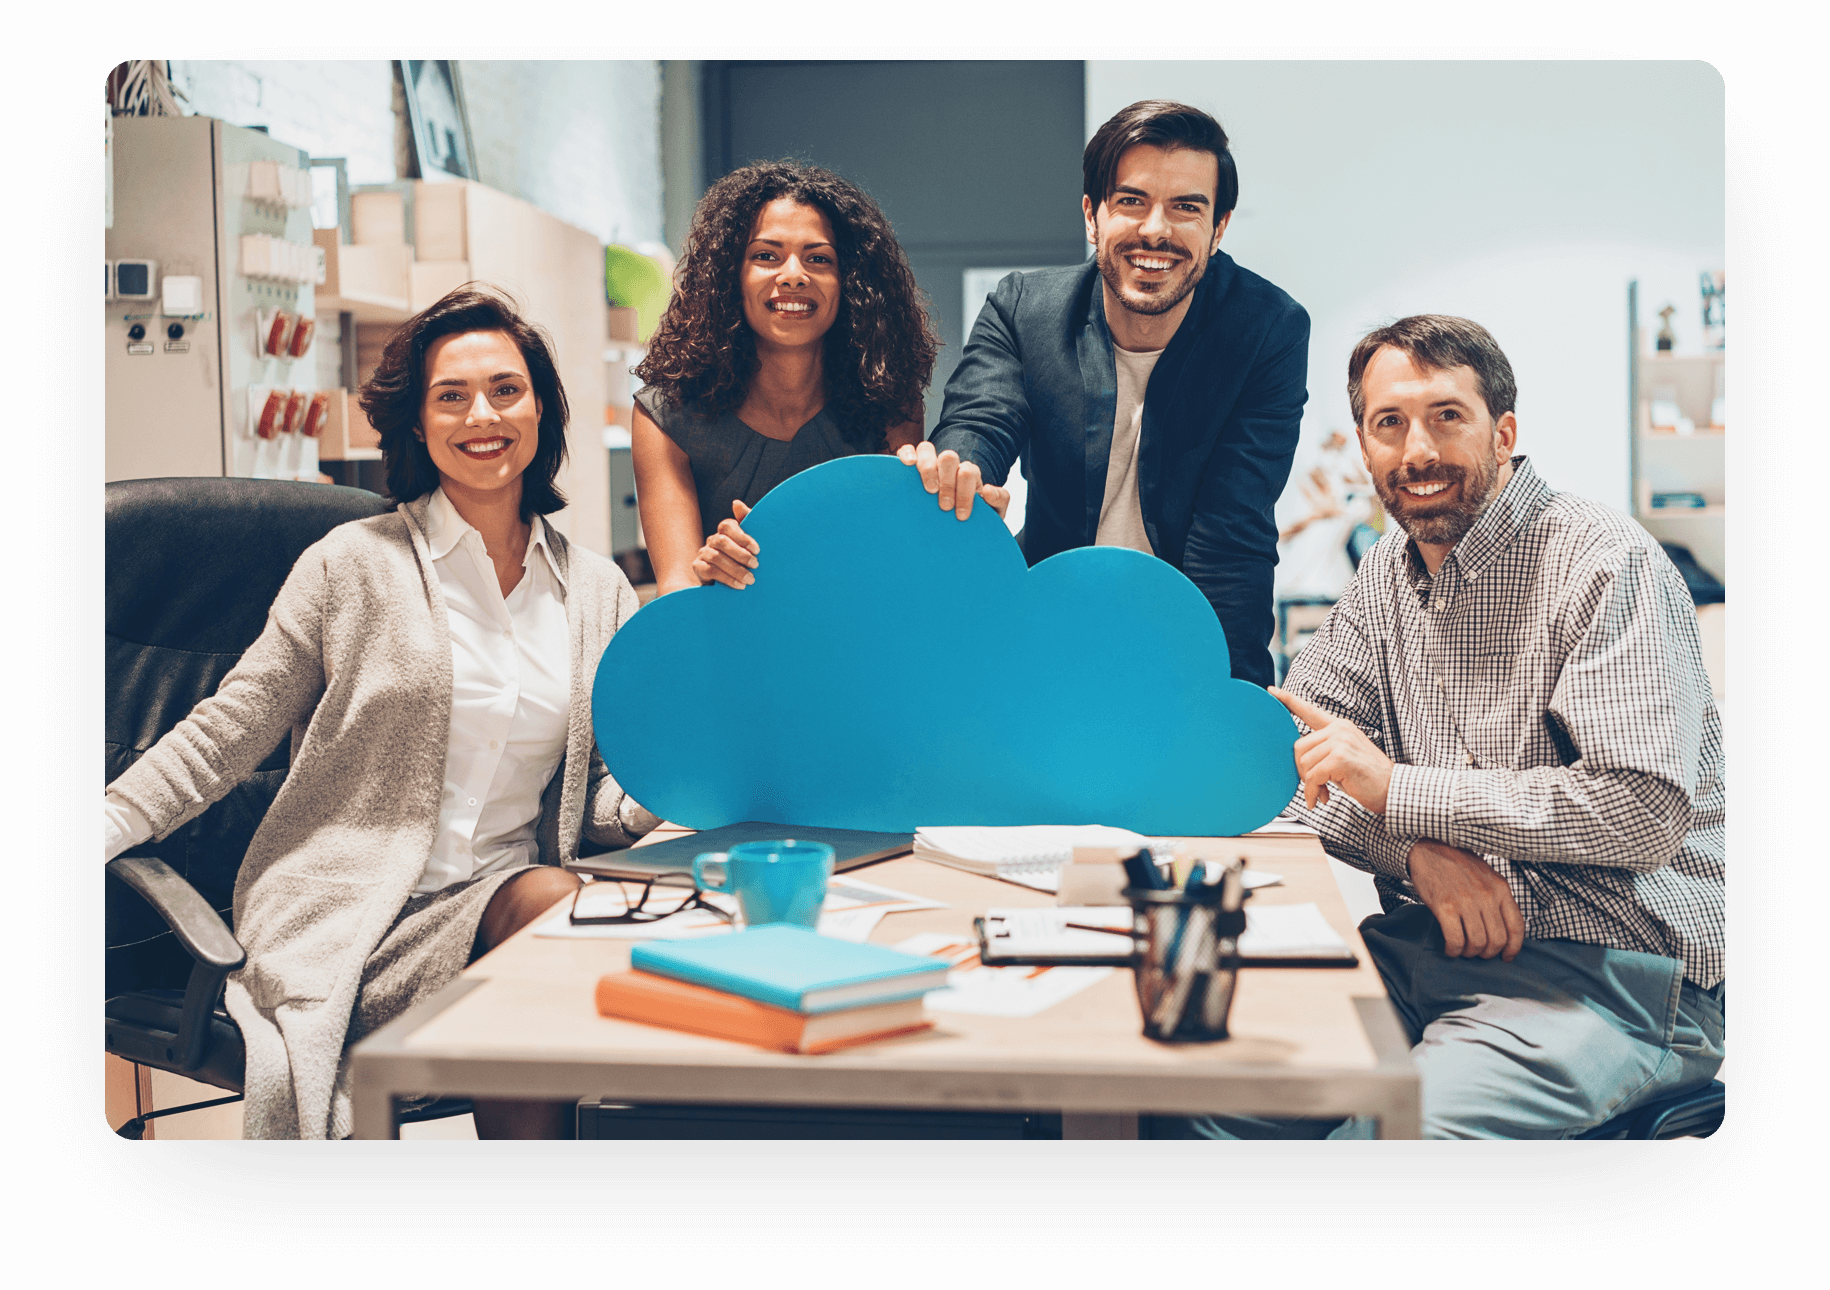 Clarity Connect integrates SaaS or cloud-based application